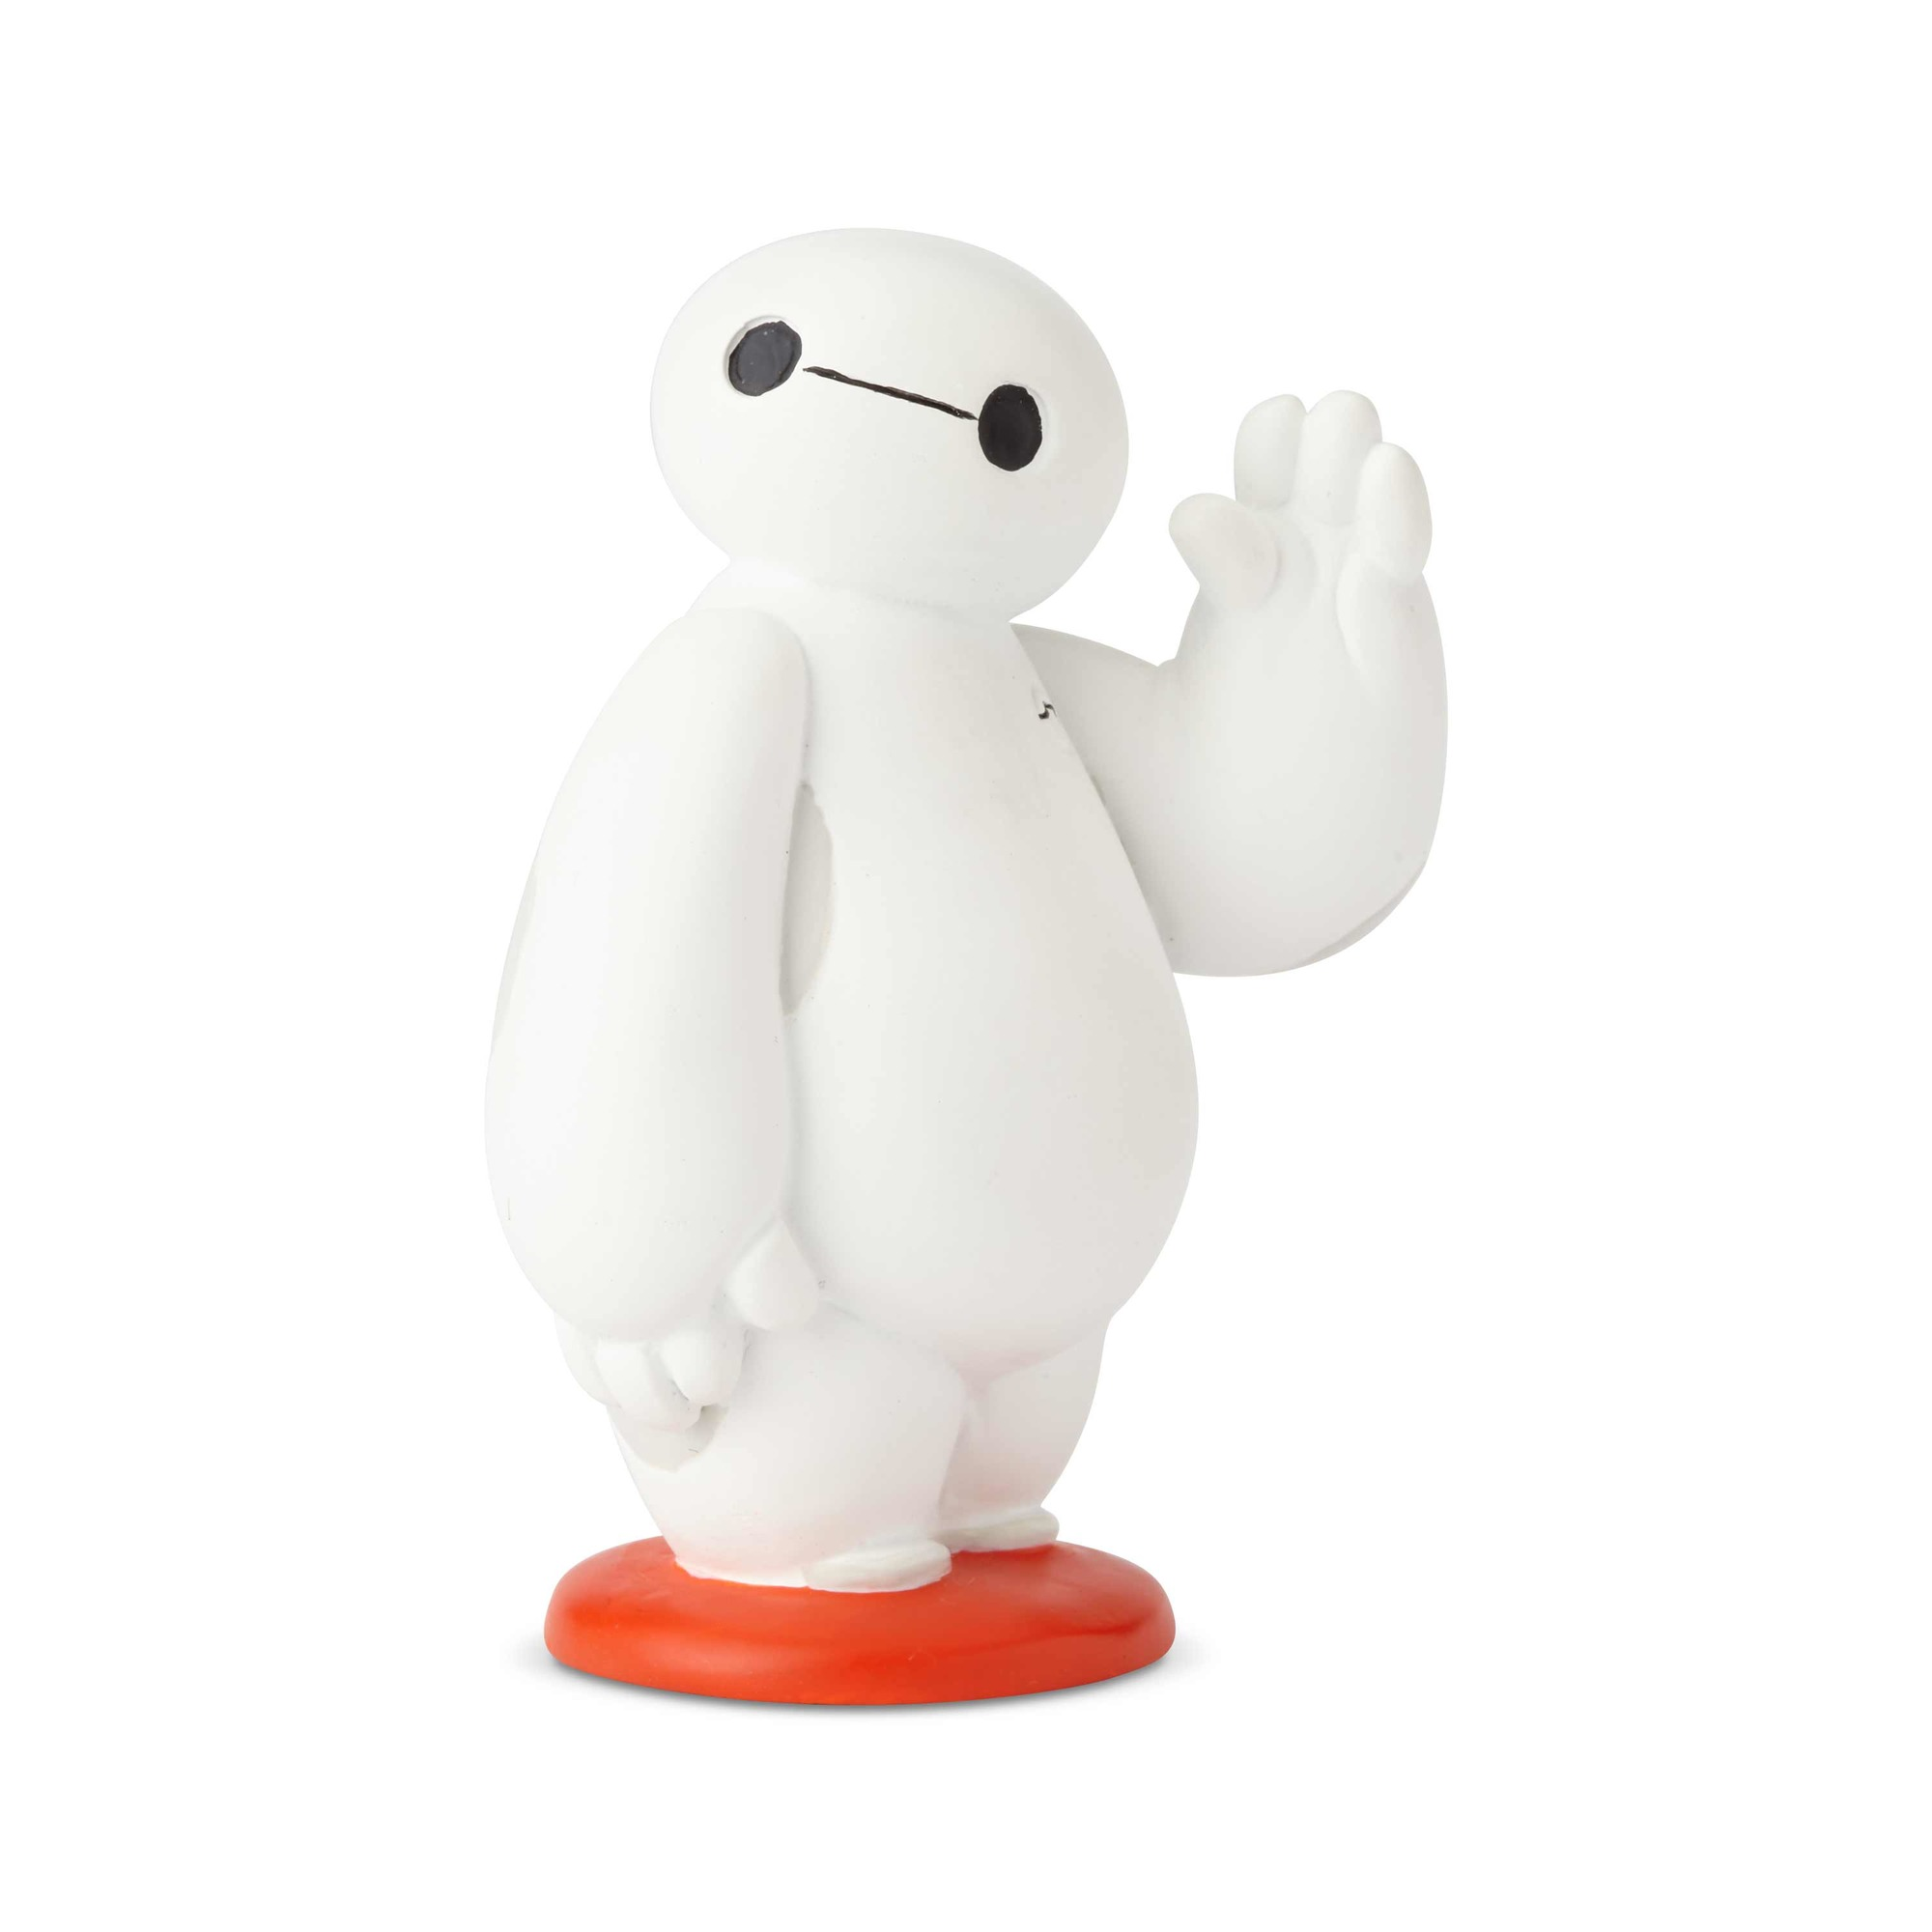 Disney Showcase Big Hero 6 Baymax Waving Figurine